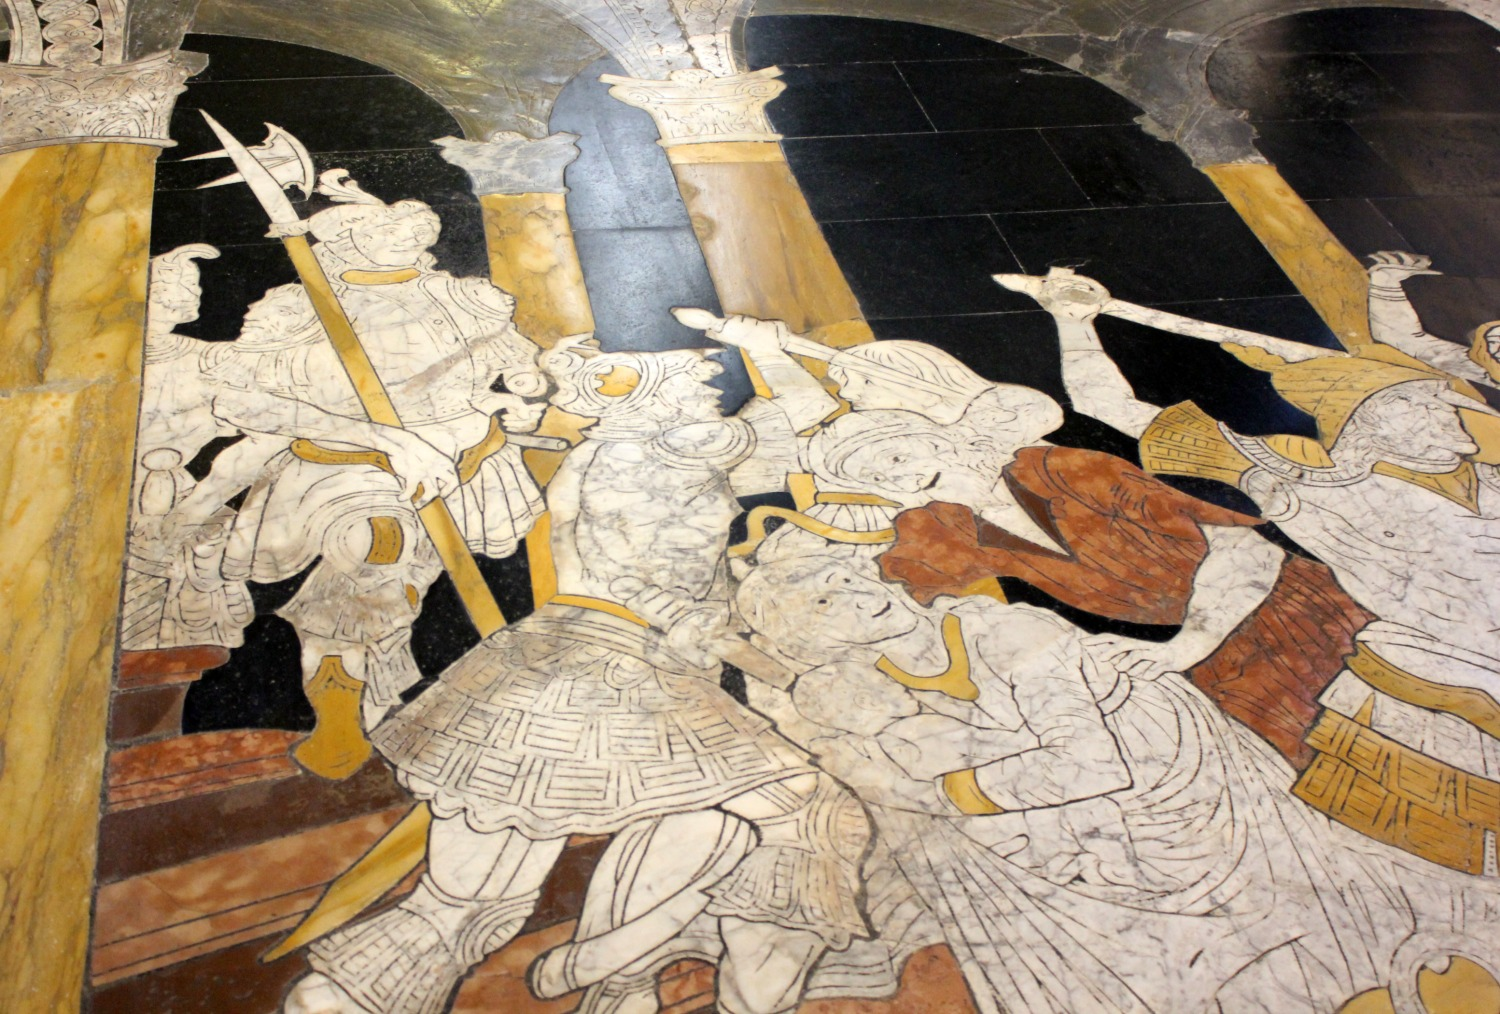 Bible stories marked out in marble on the floor of the cathedral - exploring Siena with kids, our tour discovering art, history and animals